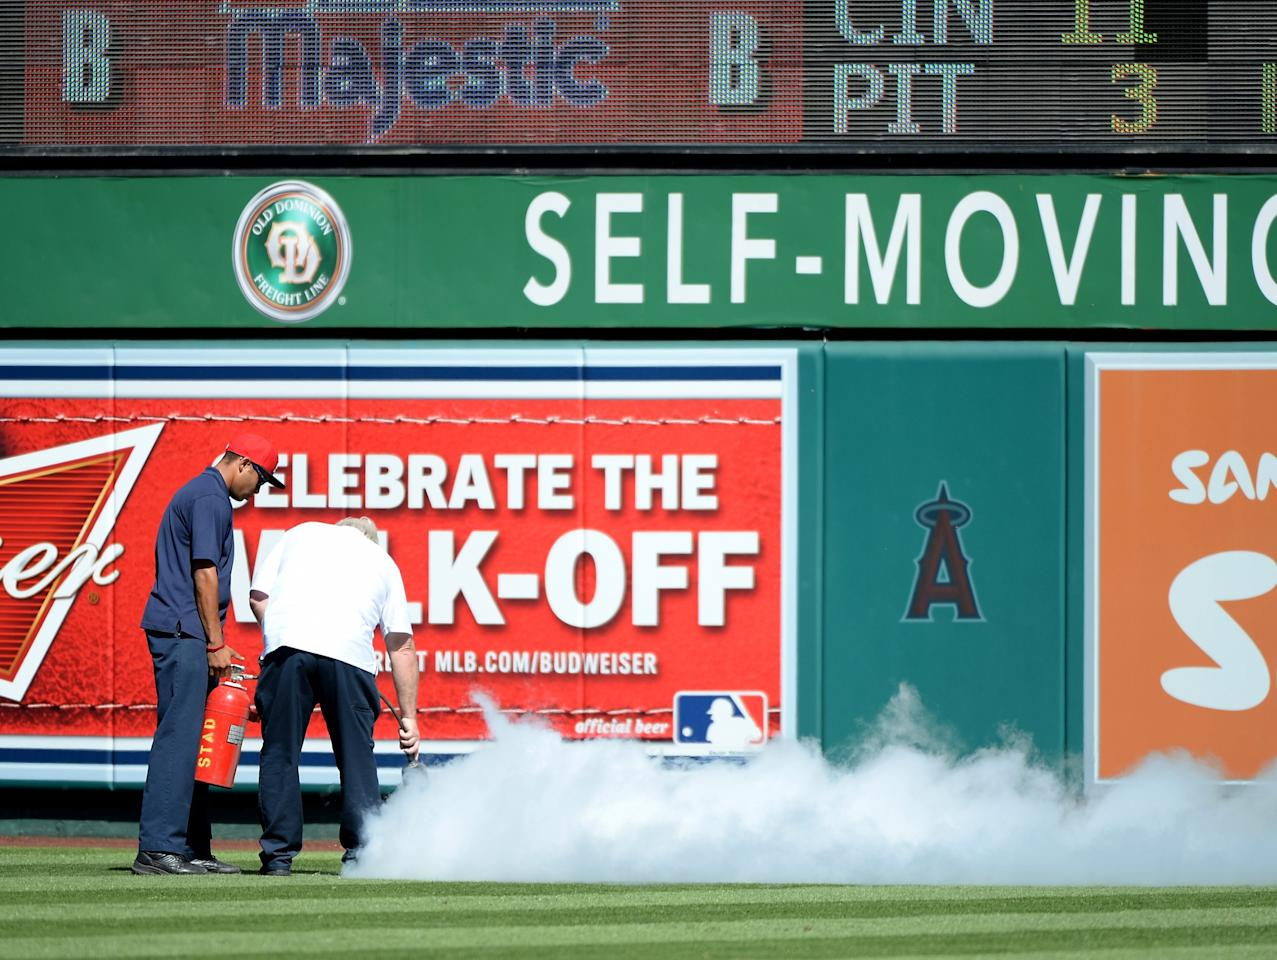 ANAHEIM, CA - SEPTEMBER 22: Groundscrew attempt to remove bees in centerfield which delayed the game between the Seattle Mariners and the Los Angeles Angels during the fourth inning at Angel Stadium of Anaheim on September 22, 2013 in Anaheim, California. (Photo by Harry How/Getty Images)